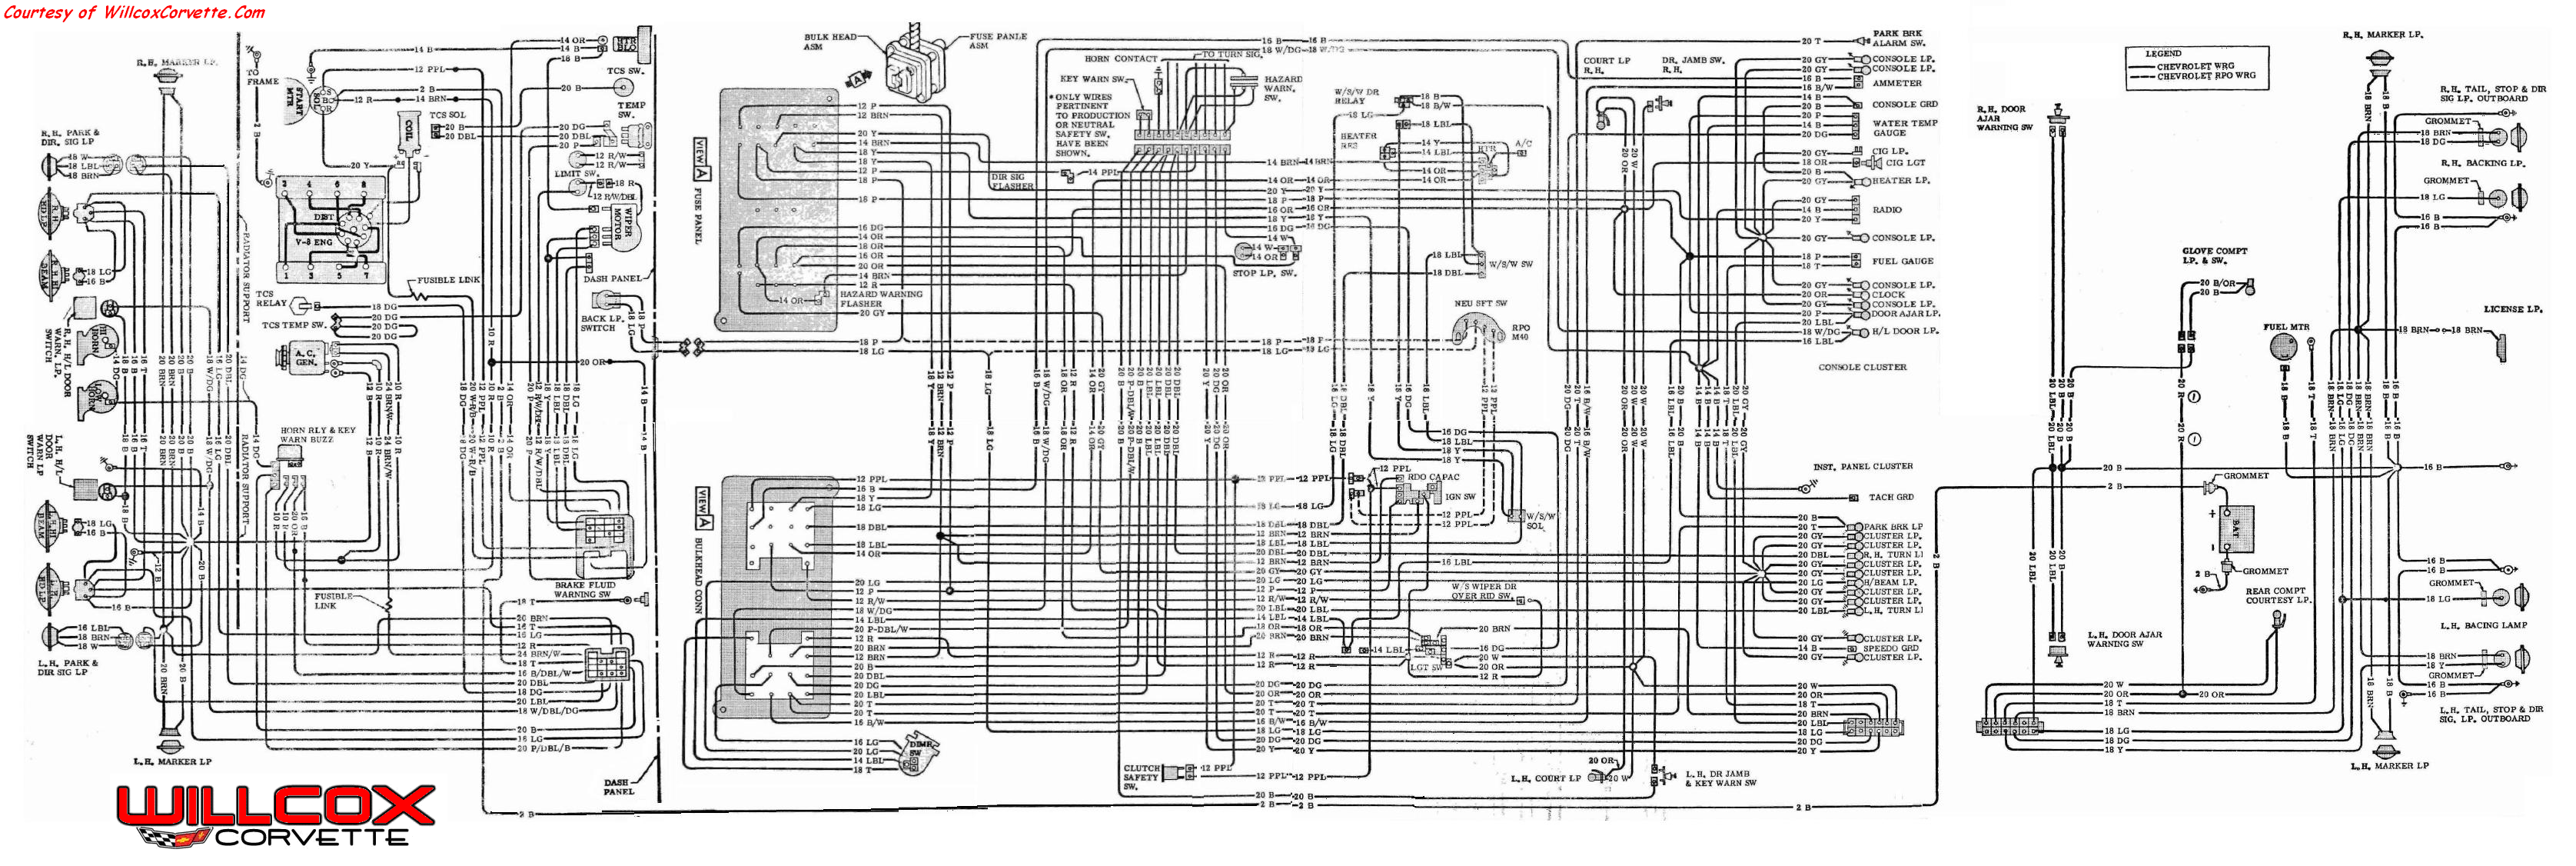 1970-corvette-wire-schematic-tracer